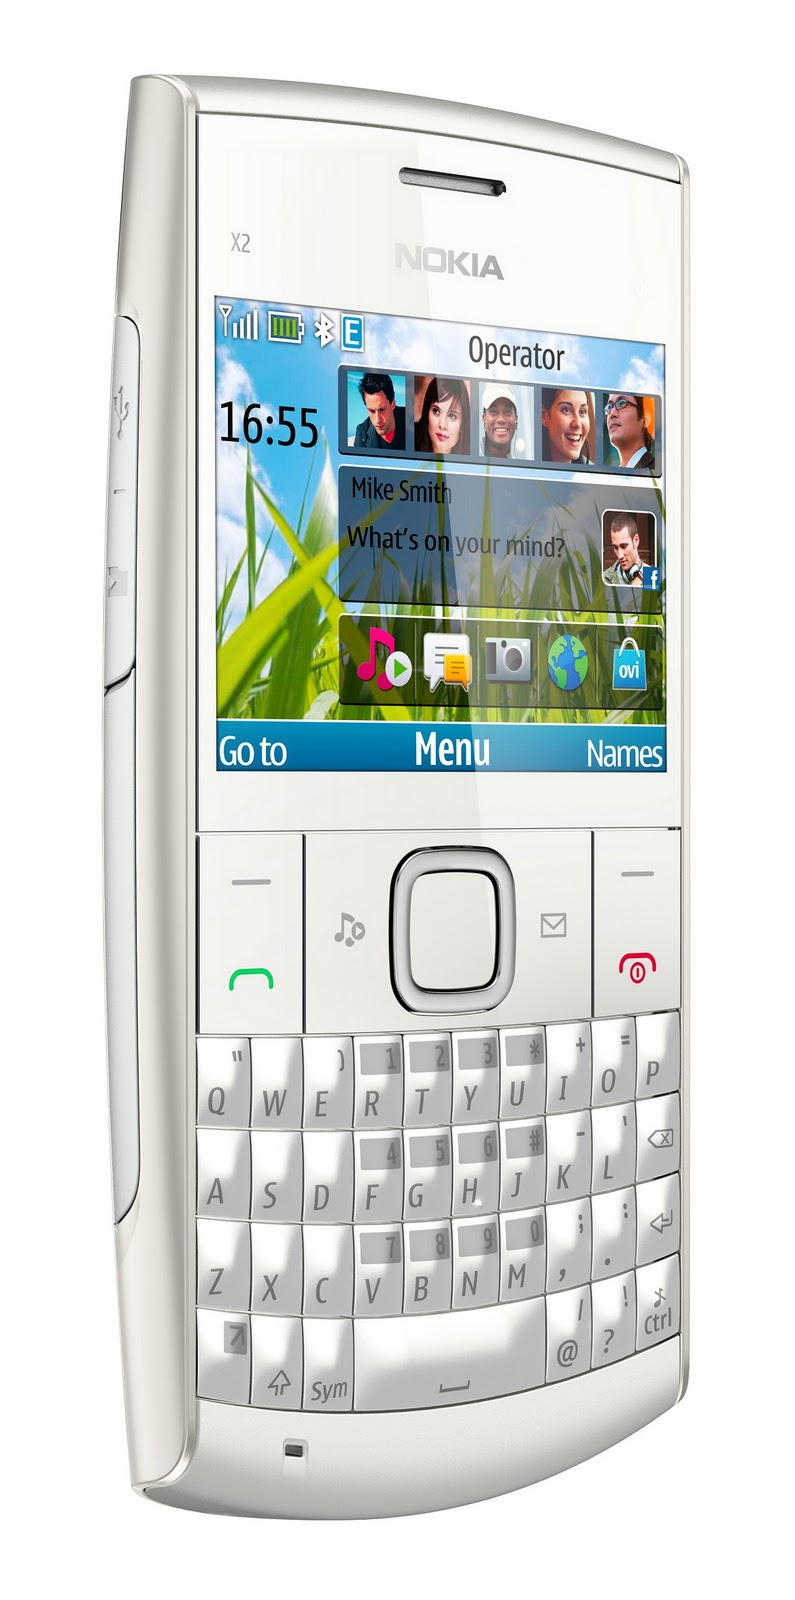 Free Facebook Nokia X2 Java Apps - Mobiles24